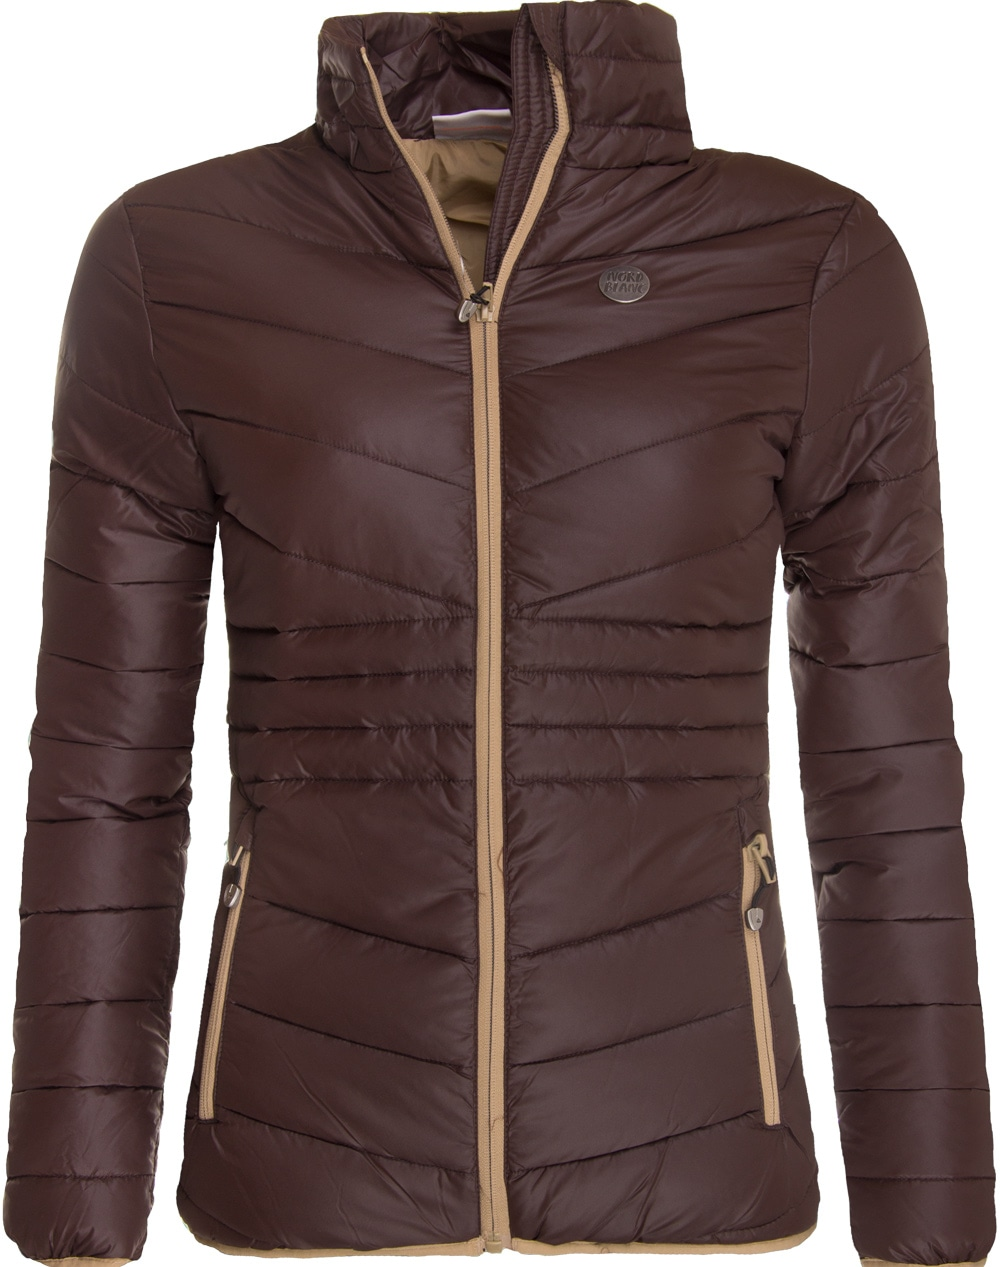 Women's winter jacket NORDBLANC Savor - NBWJL6430